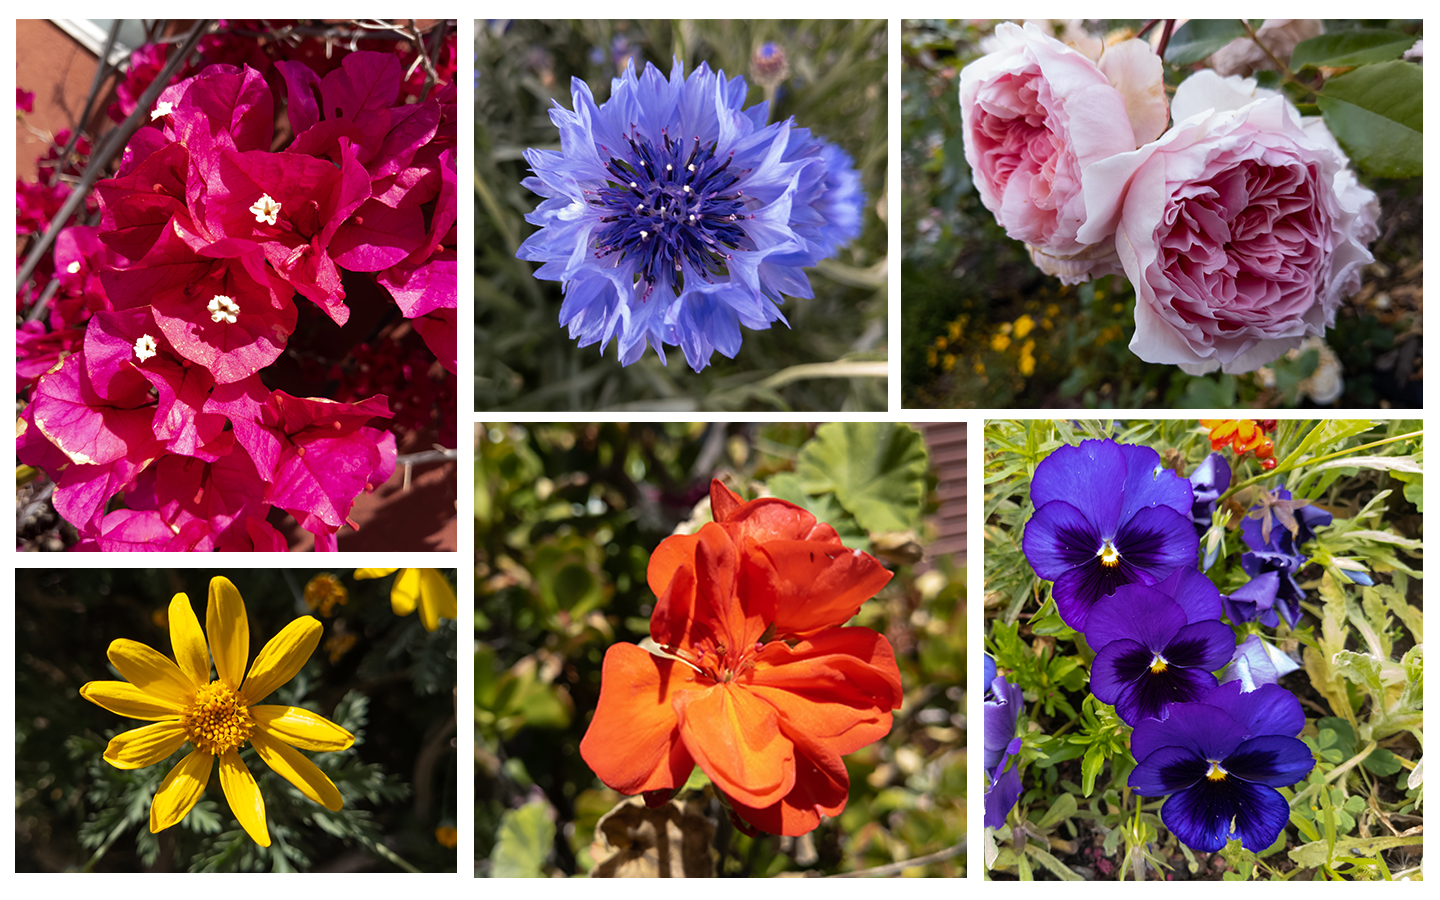 Images of colorful flowers